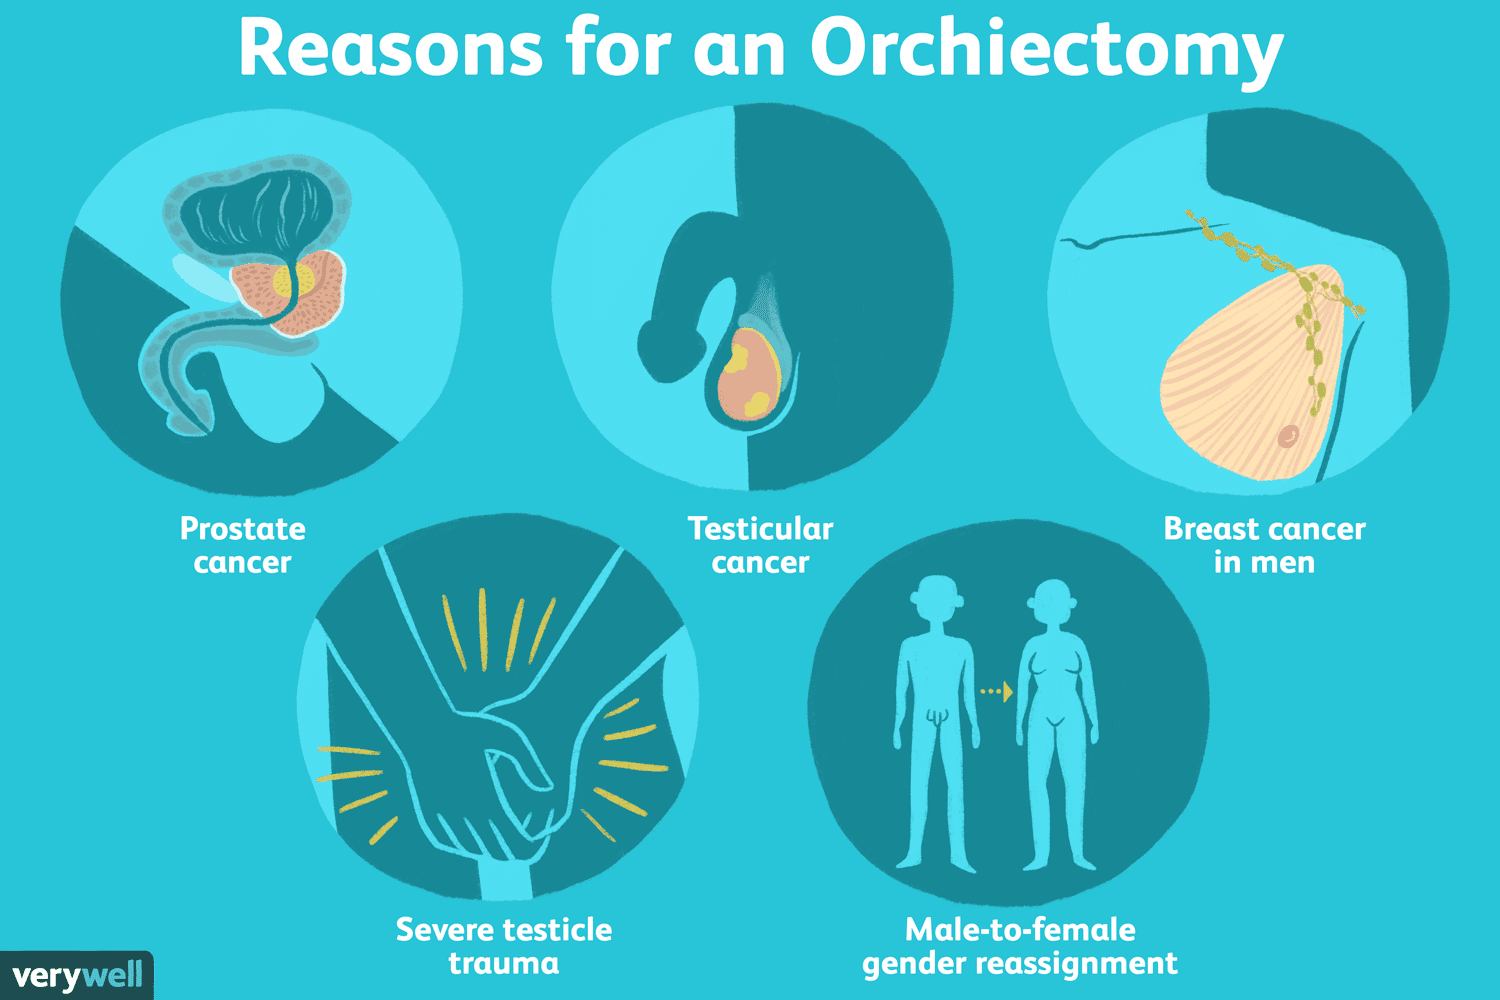 Reasons for an orchiectomy